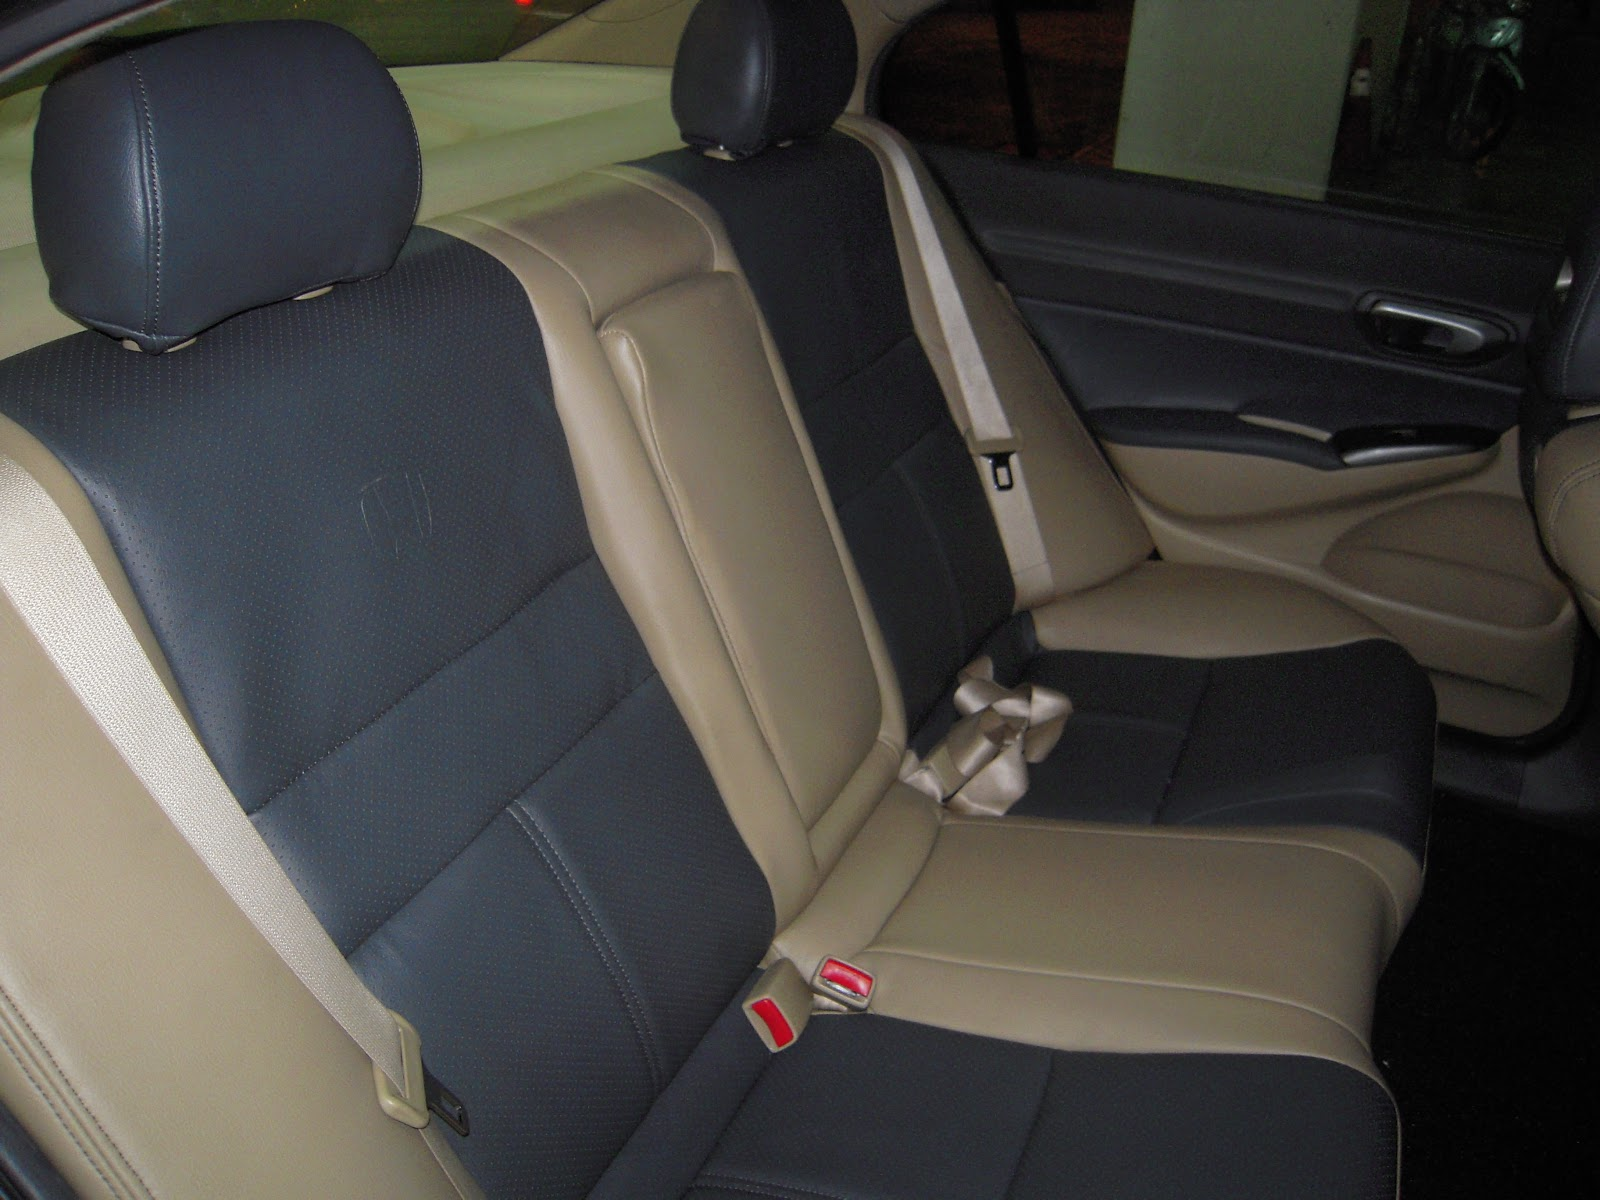 Honda Car Seat Covers In Calgary